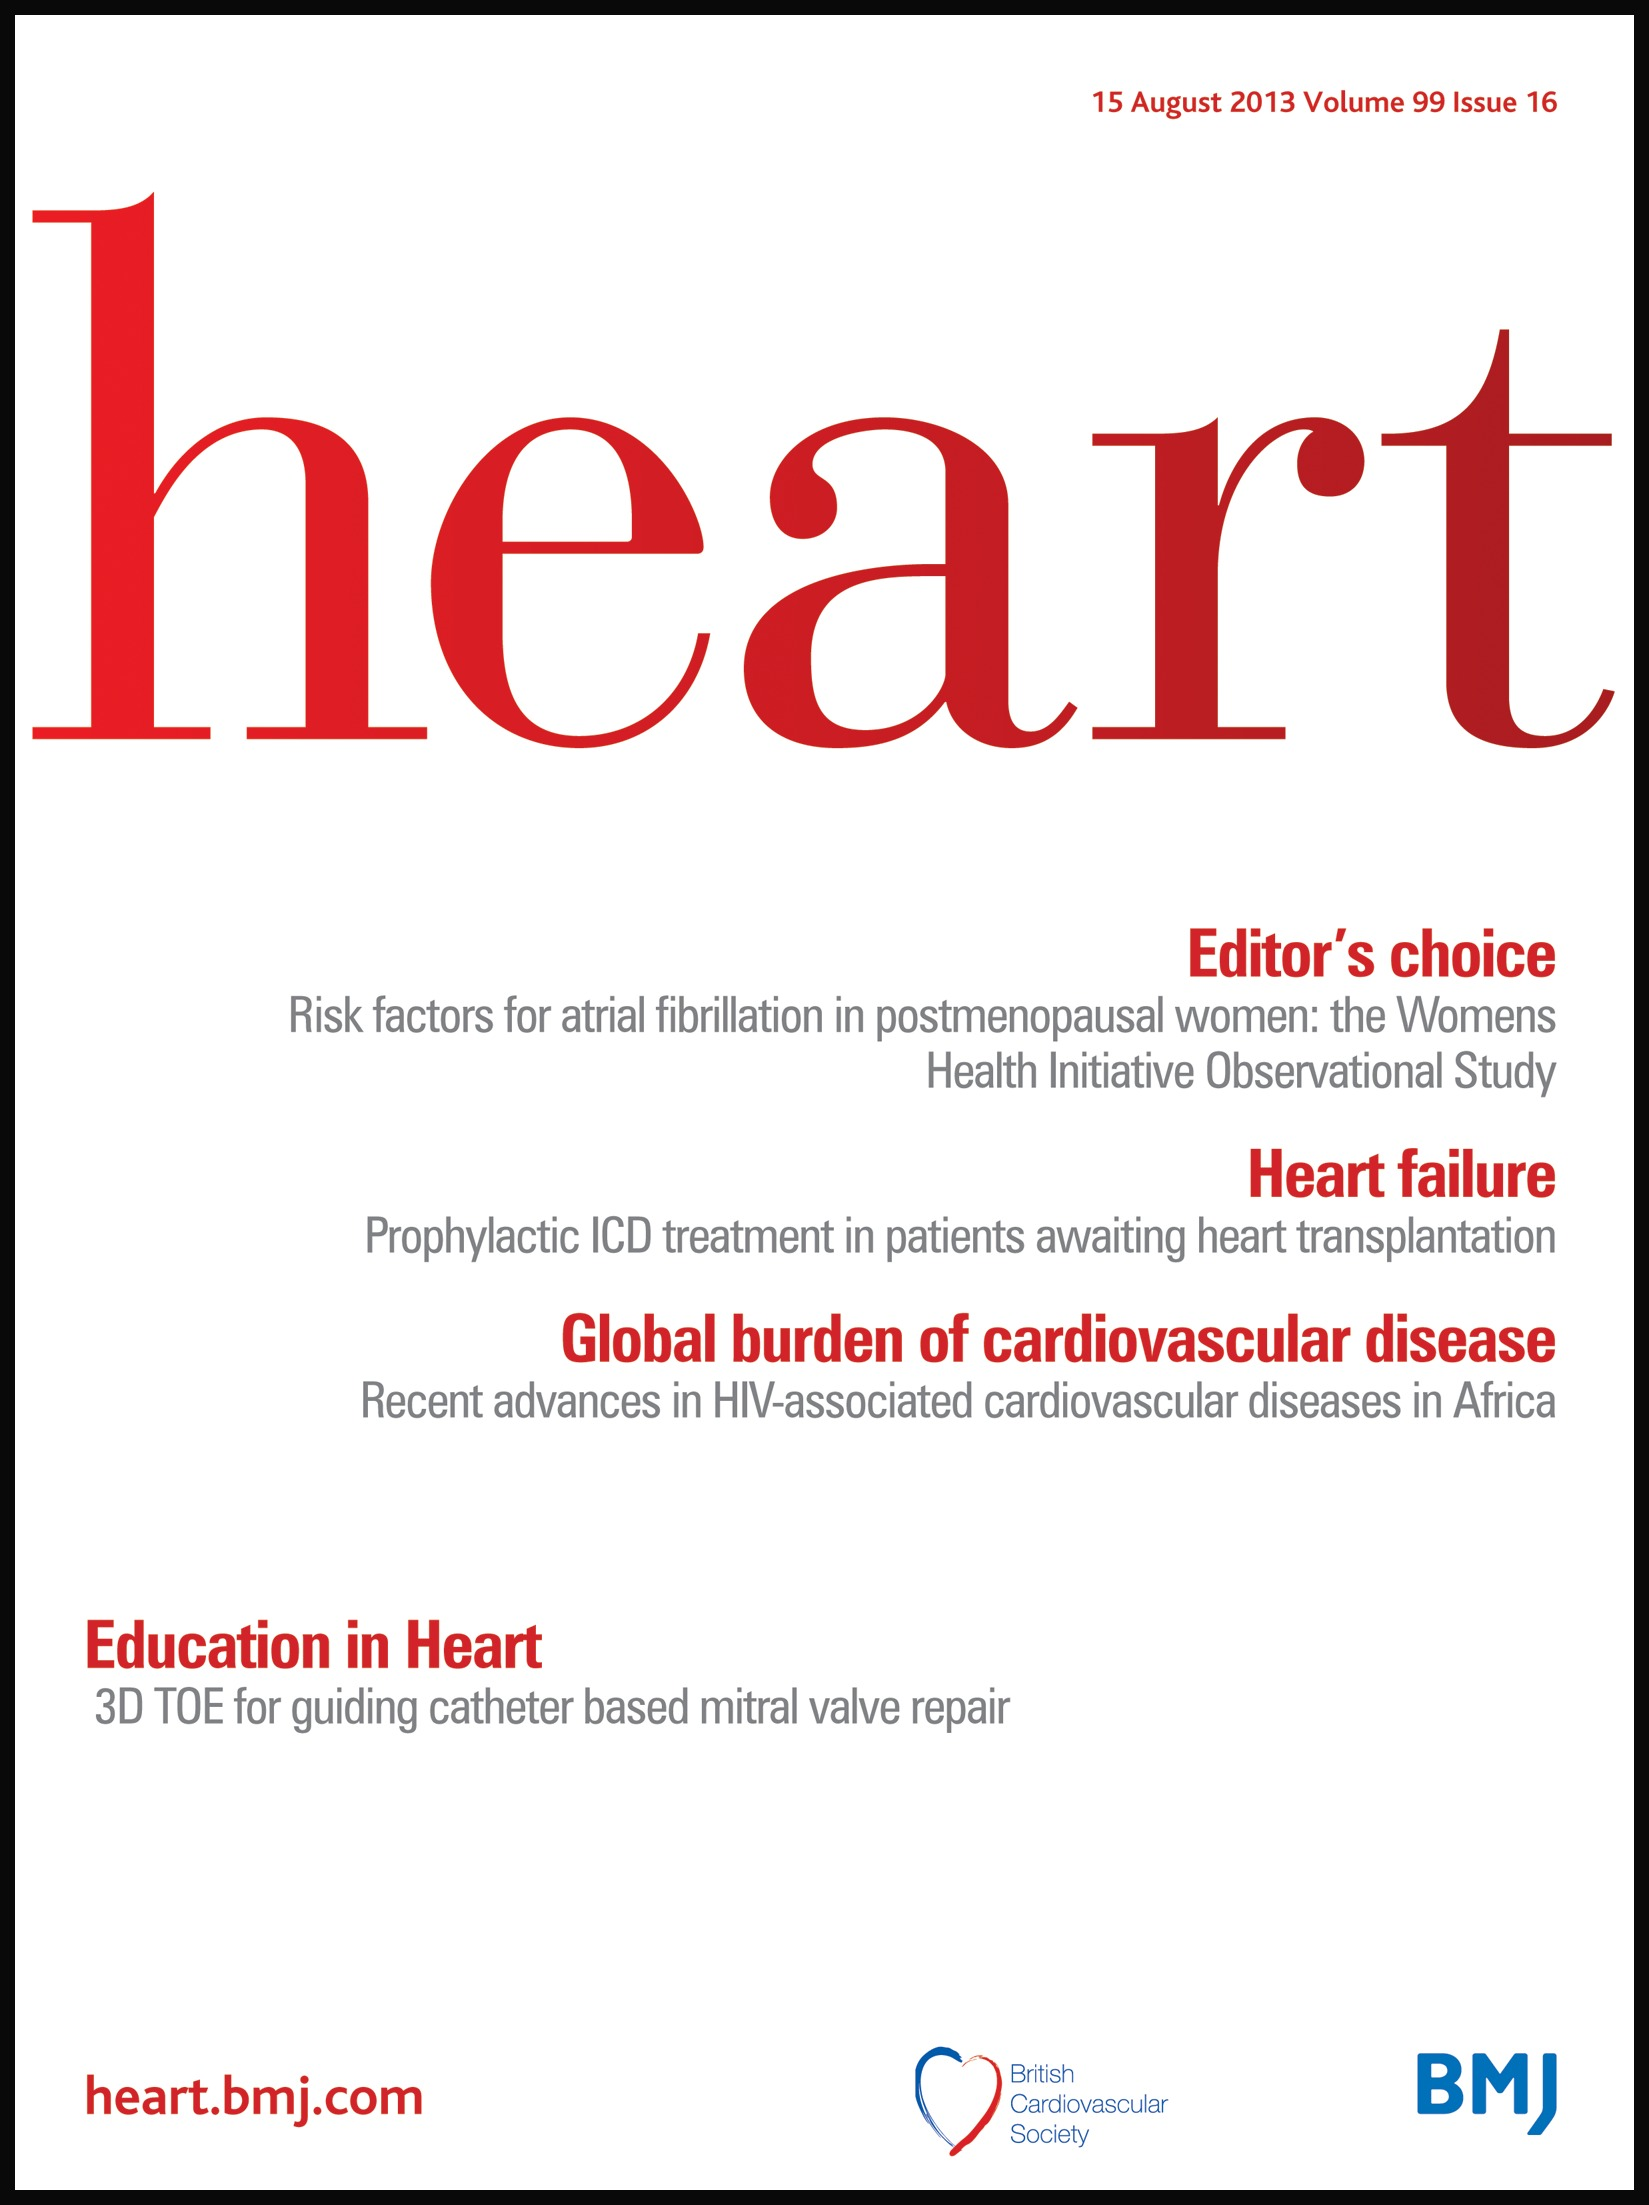 Risk Factors For Atrial Fibrillation And Their Population Burden In Carrier Columbia Wiring Diagram Postmenopausal Women The Womens Health Initiative Observational Study Heart